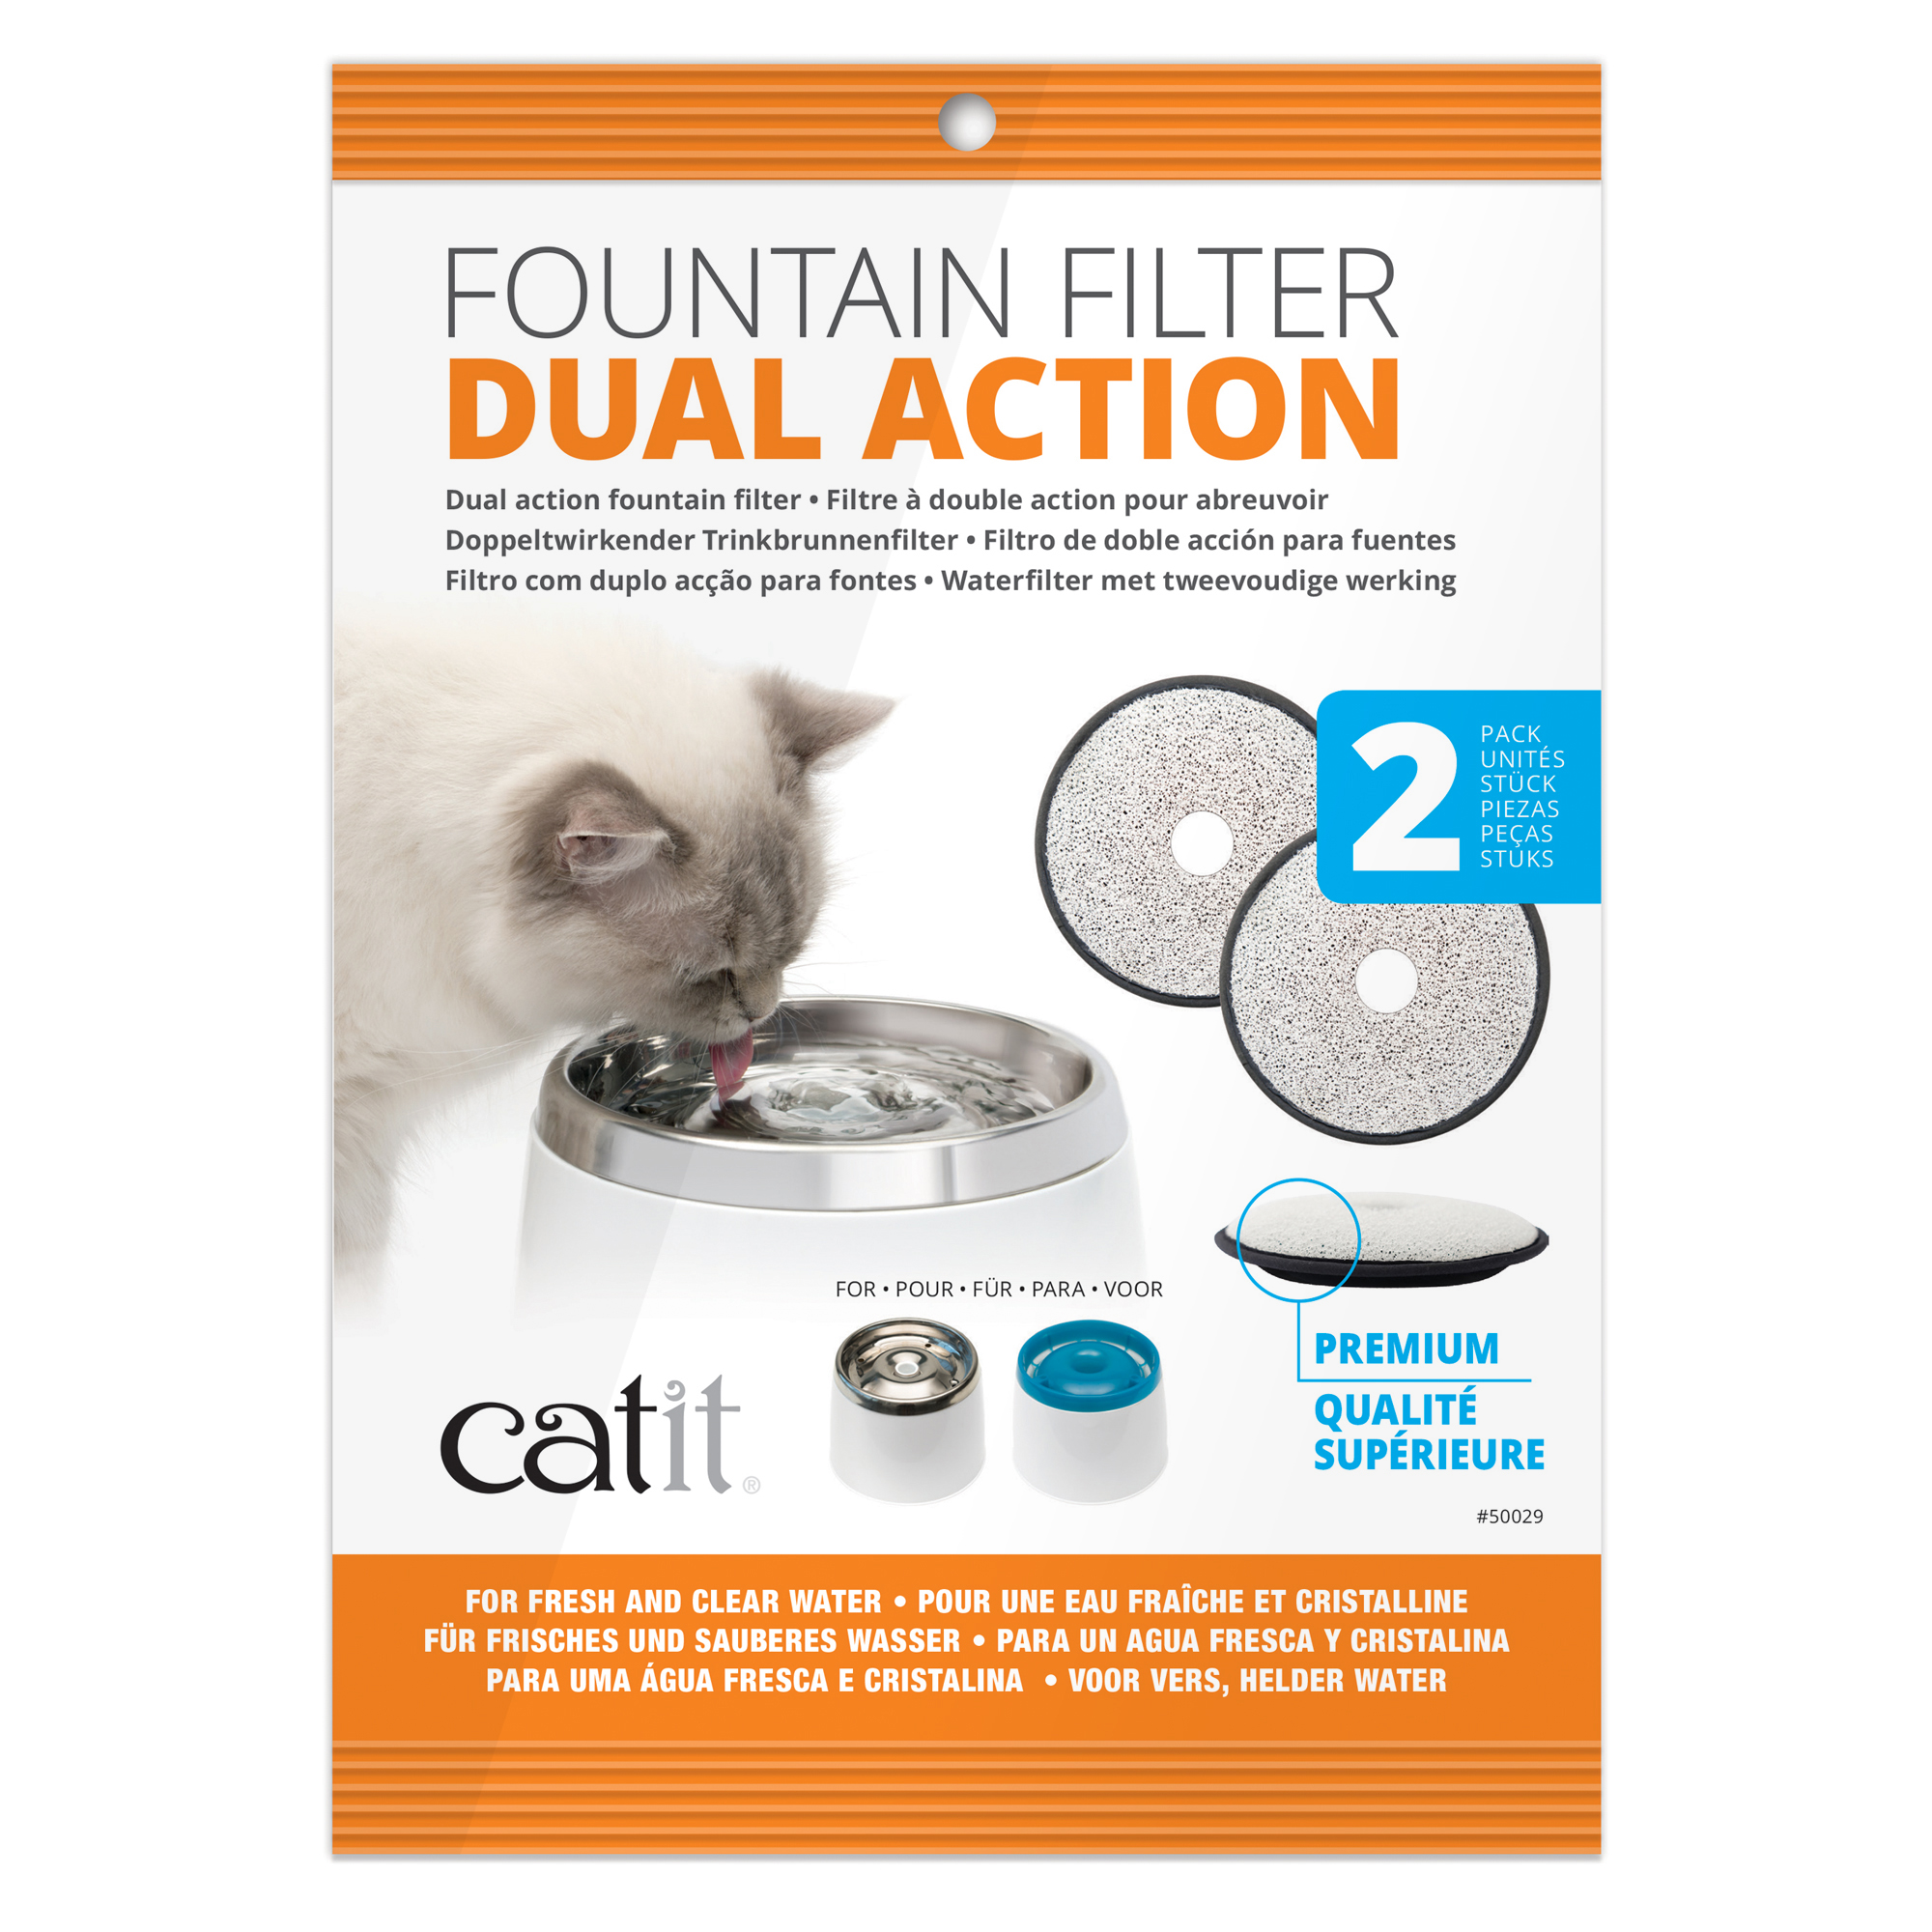 Catit Dual Action Replacement Fountain Filters, 2-pk (Size: 2-pk) Image